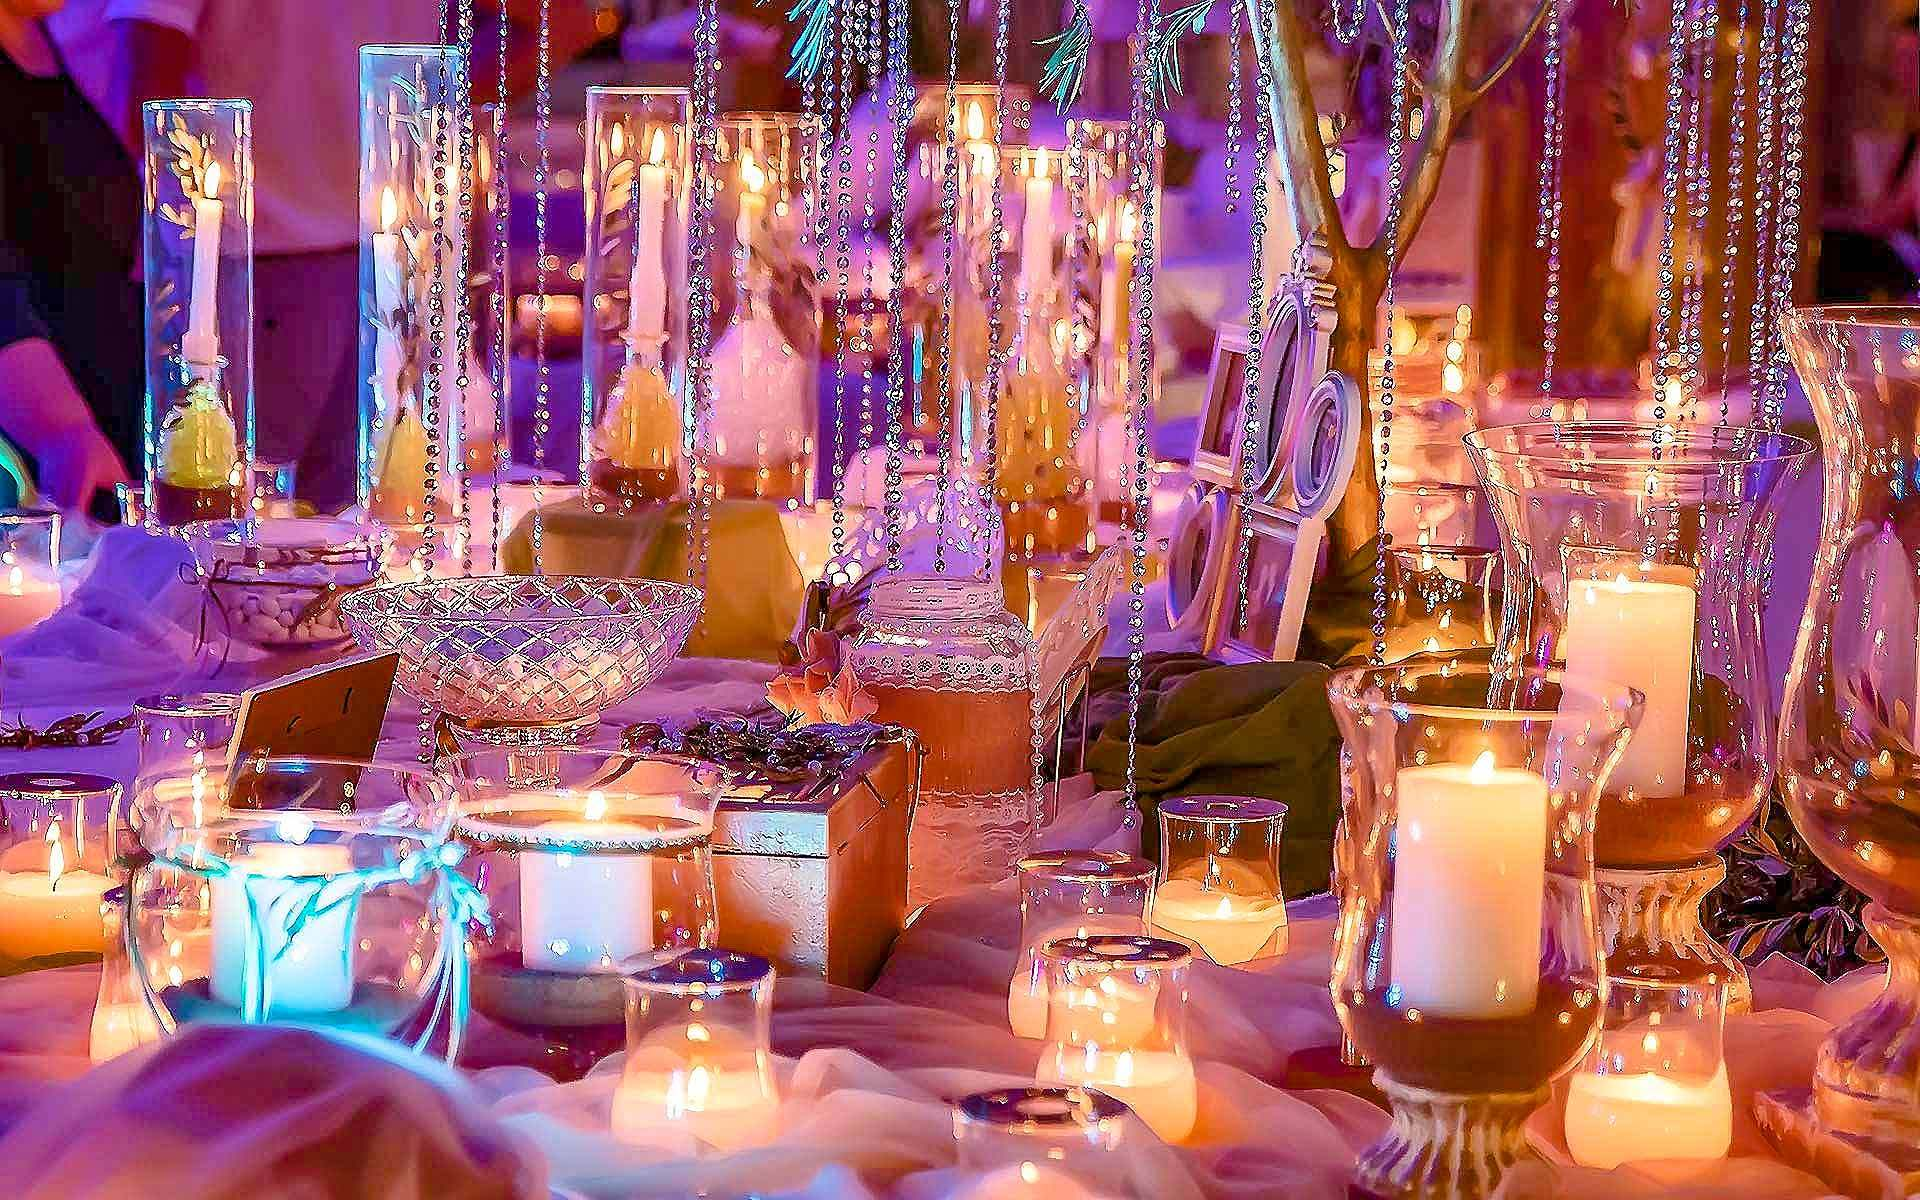 Lighting-With-Candles-And-Vases-For-A-Romantic-Wedding-Decoration